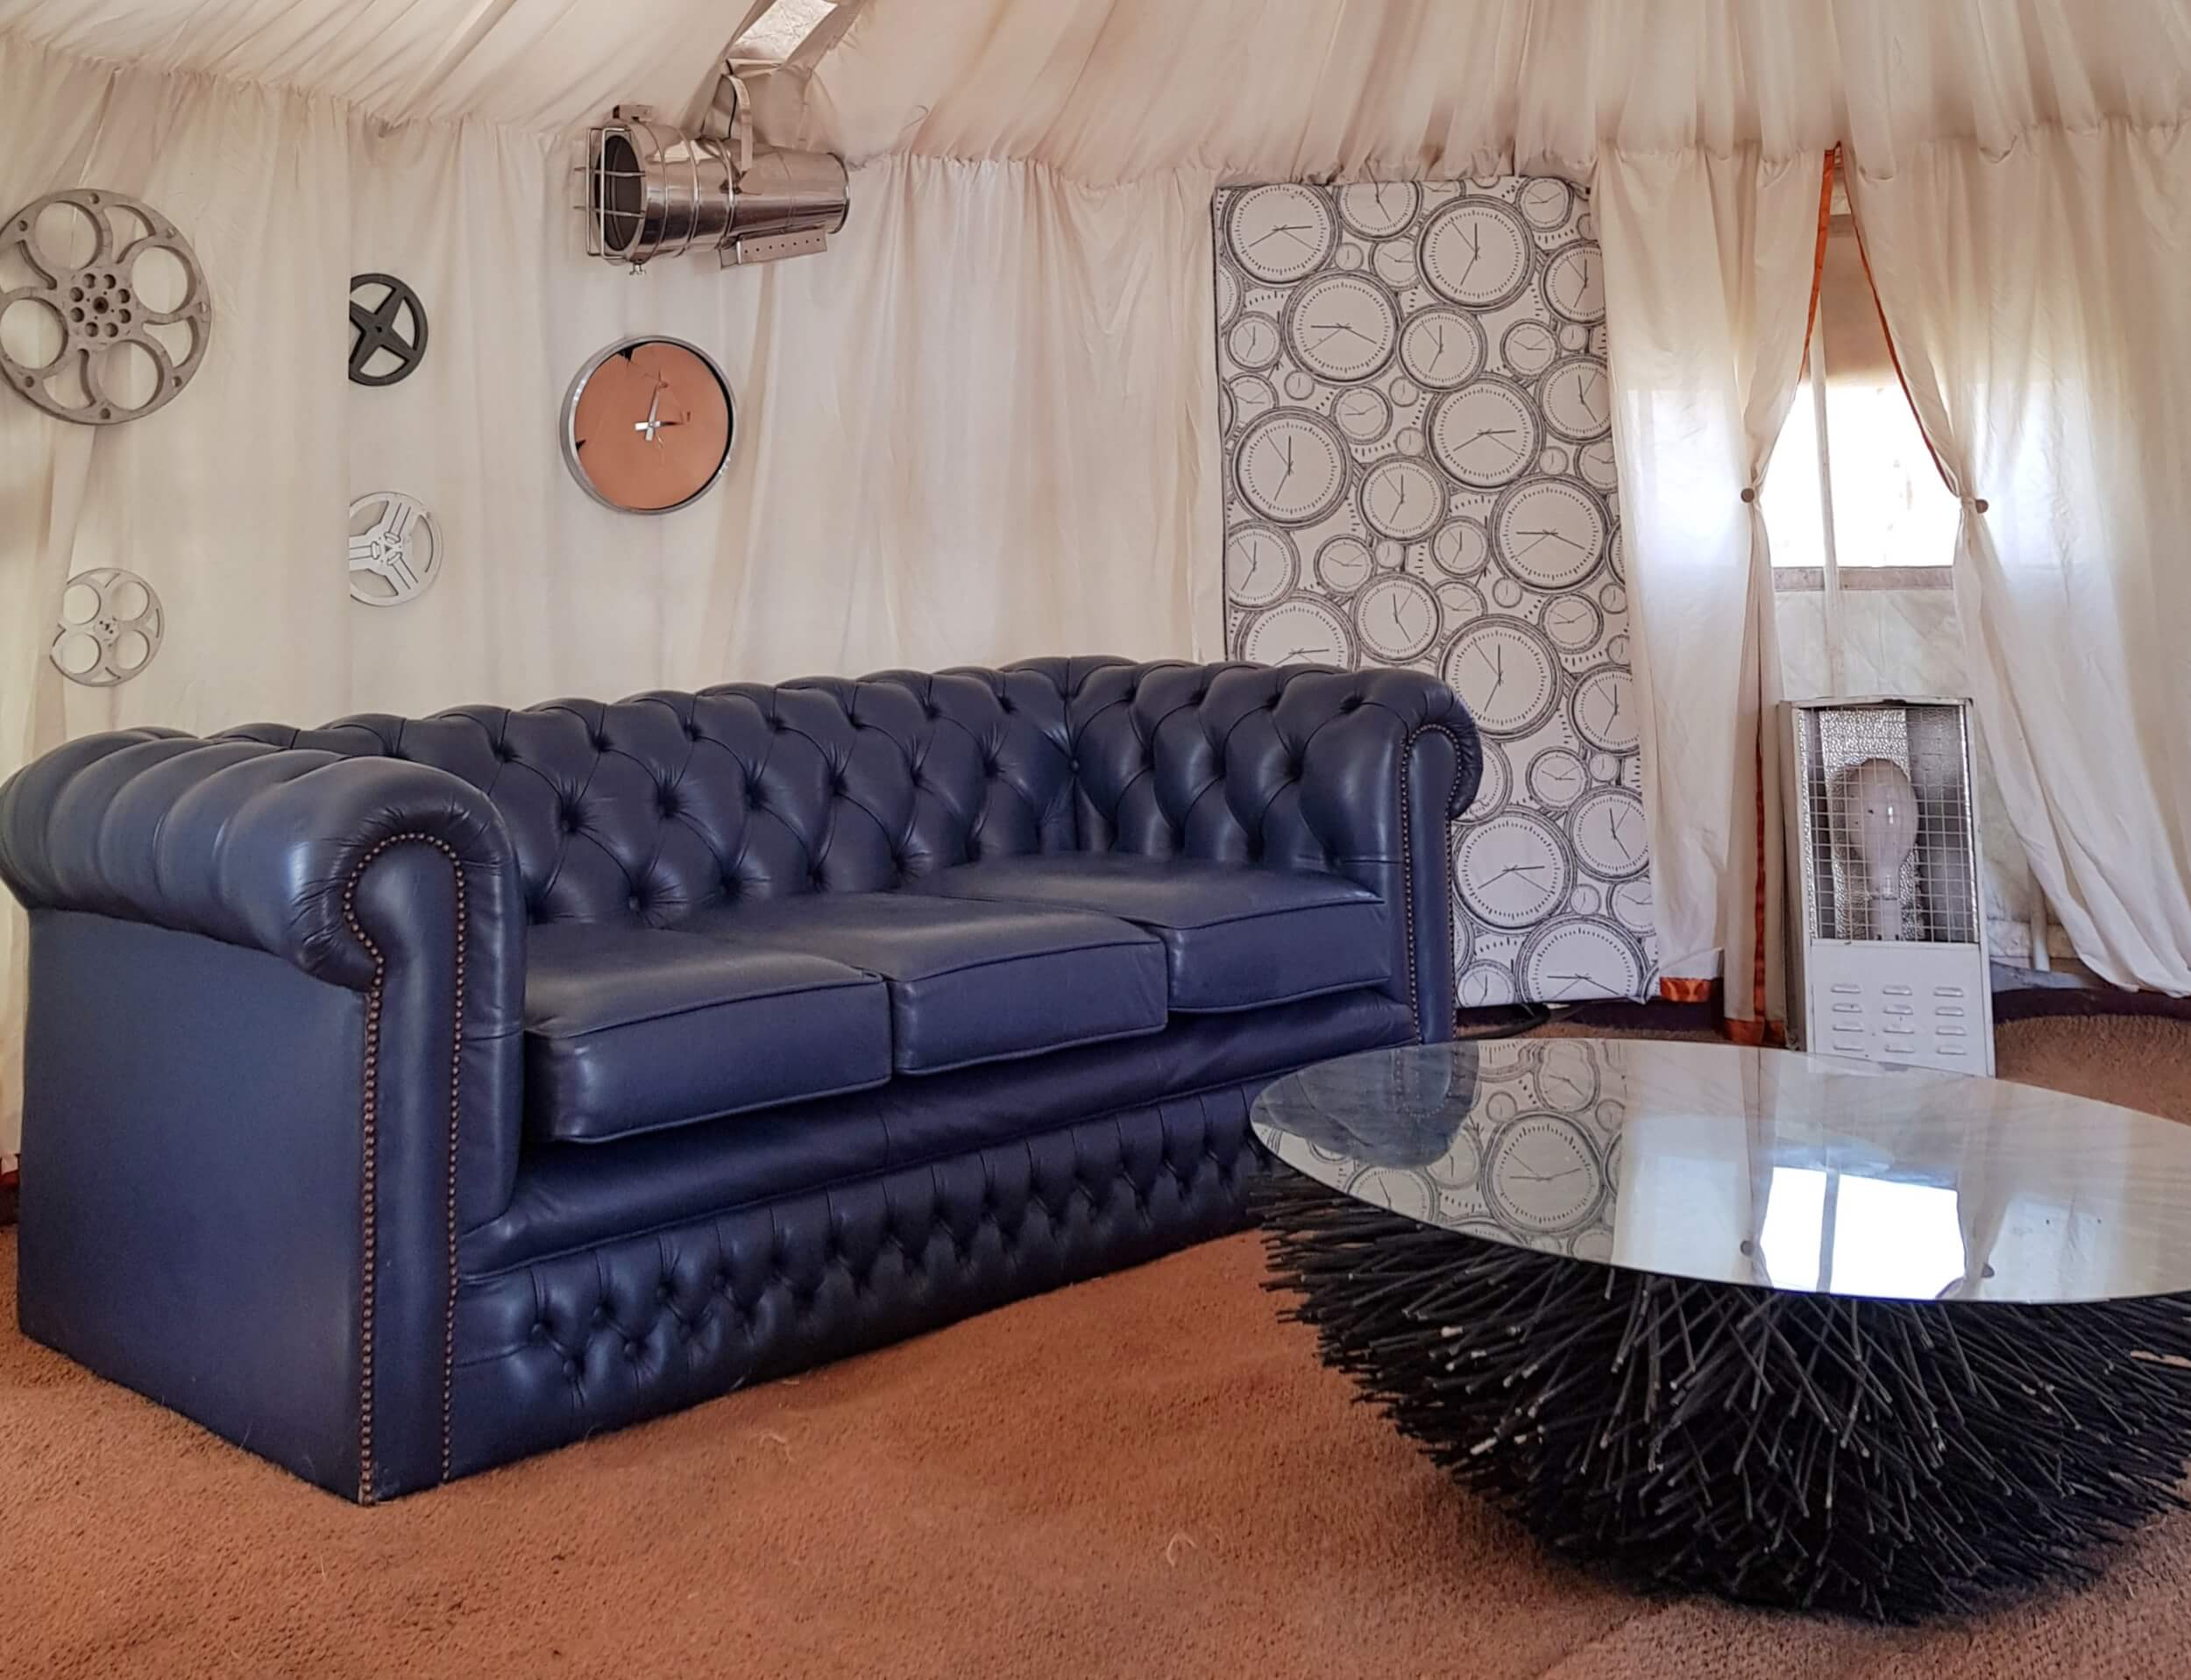 Event yurts at boomtown interior decor|plush tents